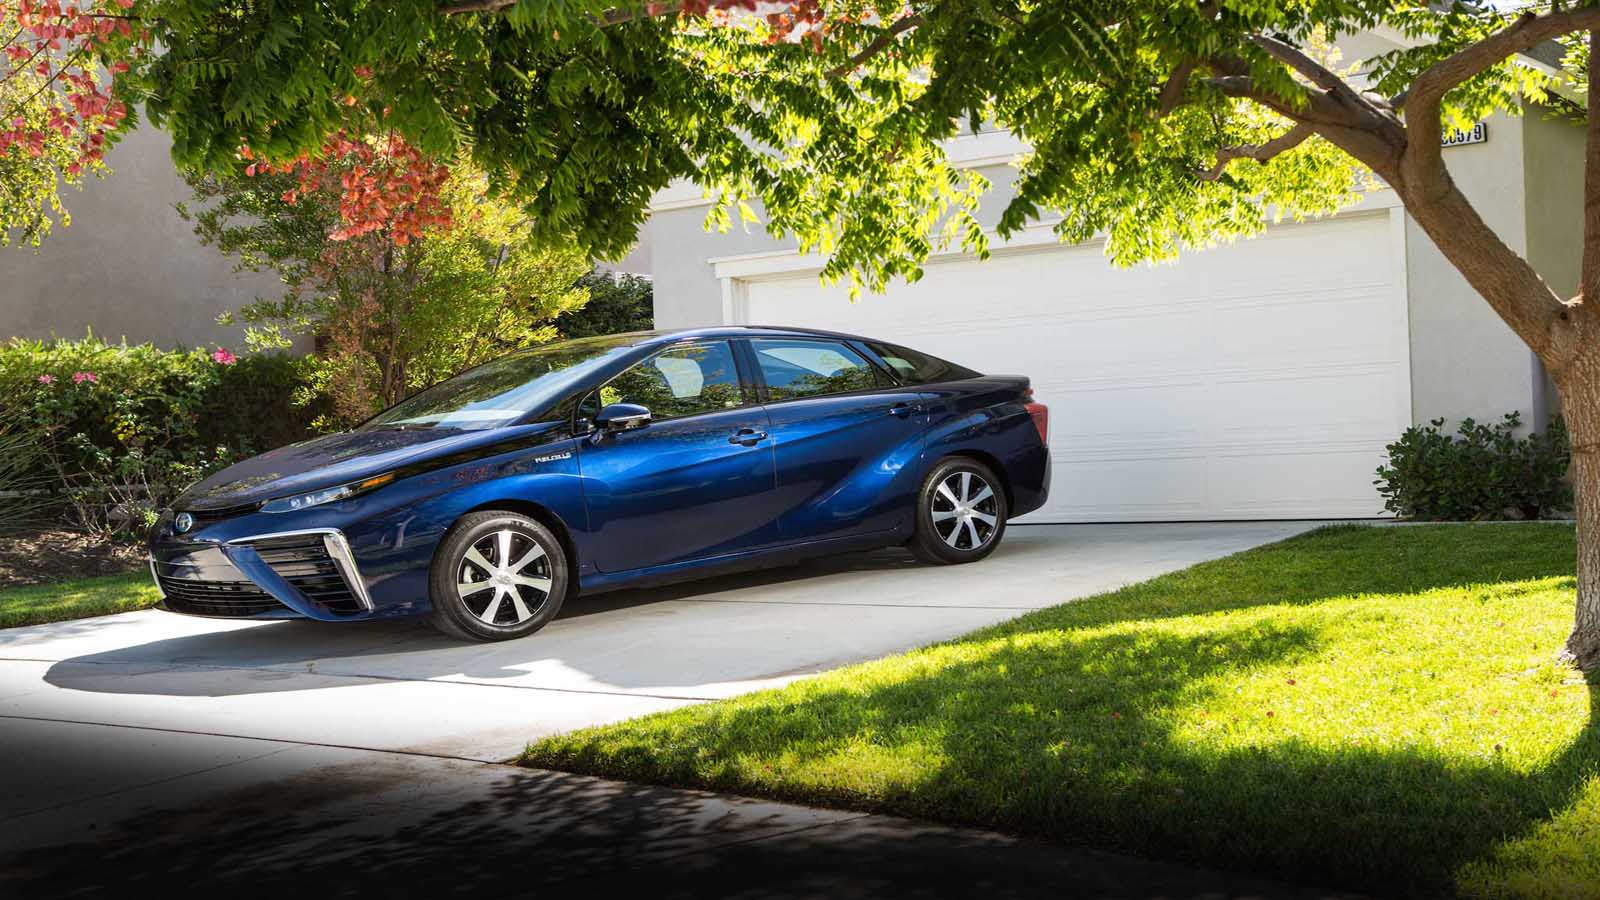 Fuel Cell Vehicle Toyota Europe Further Hydrogen Oxygen On Car Engine Diagram The Of Tomorrow In Your Driveway Today